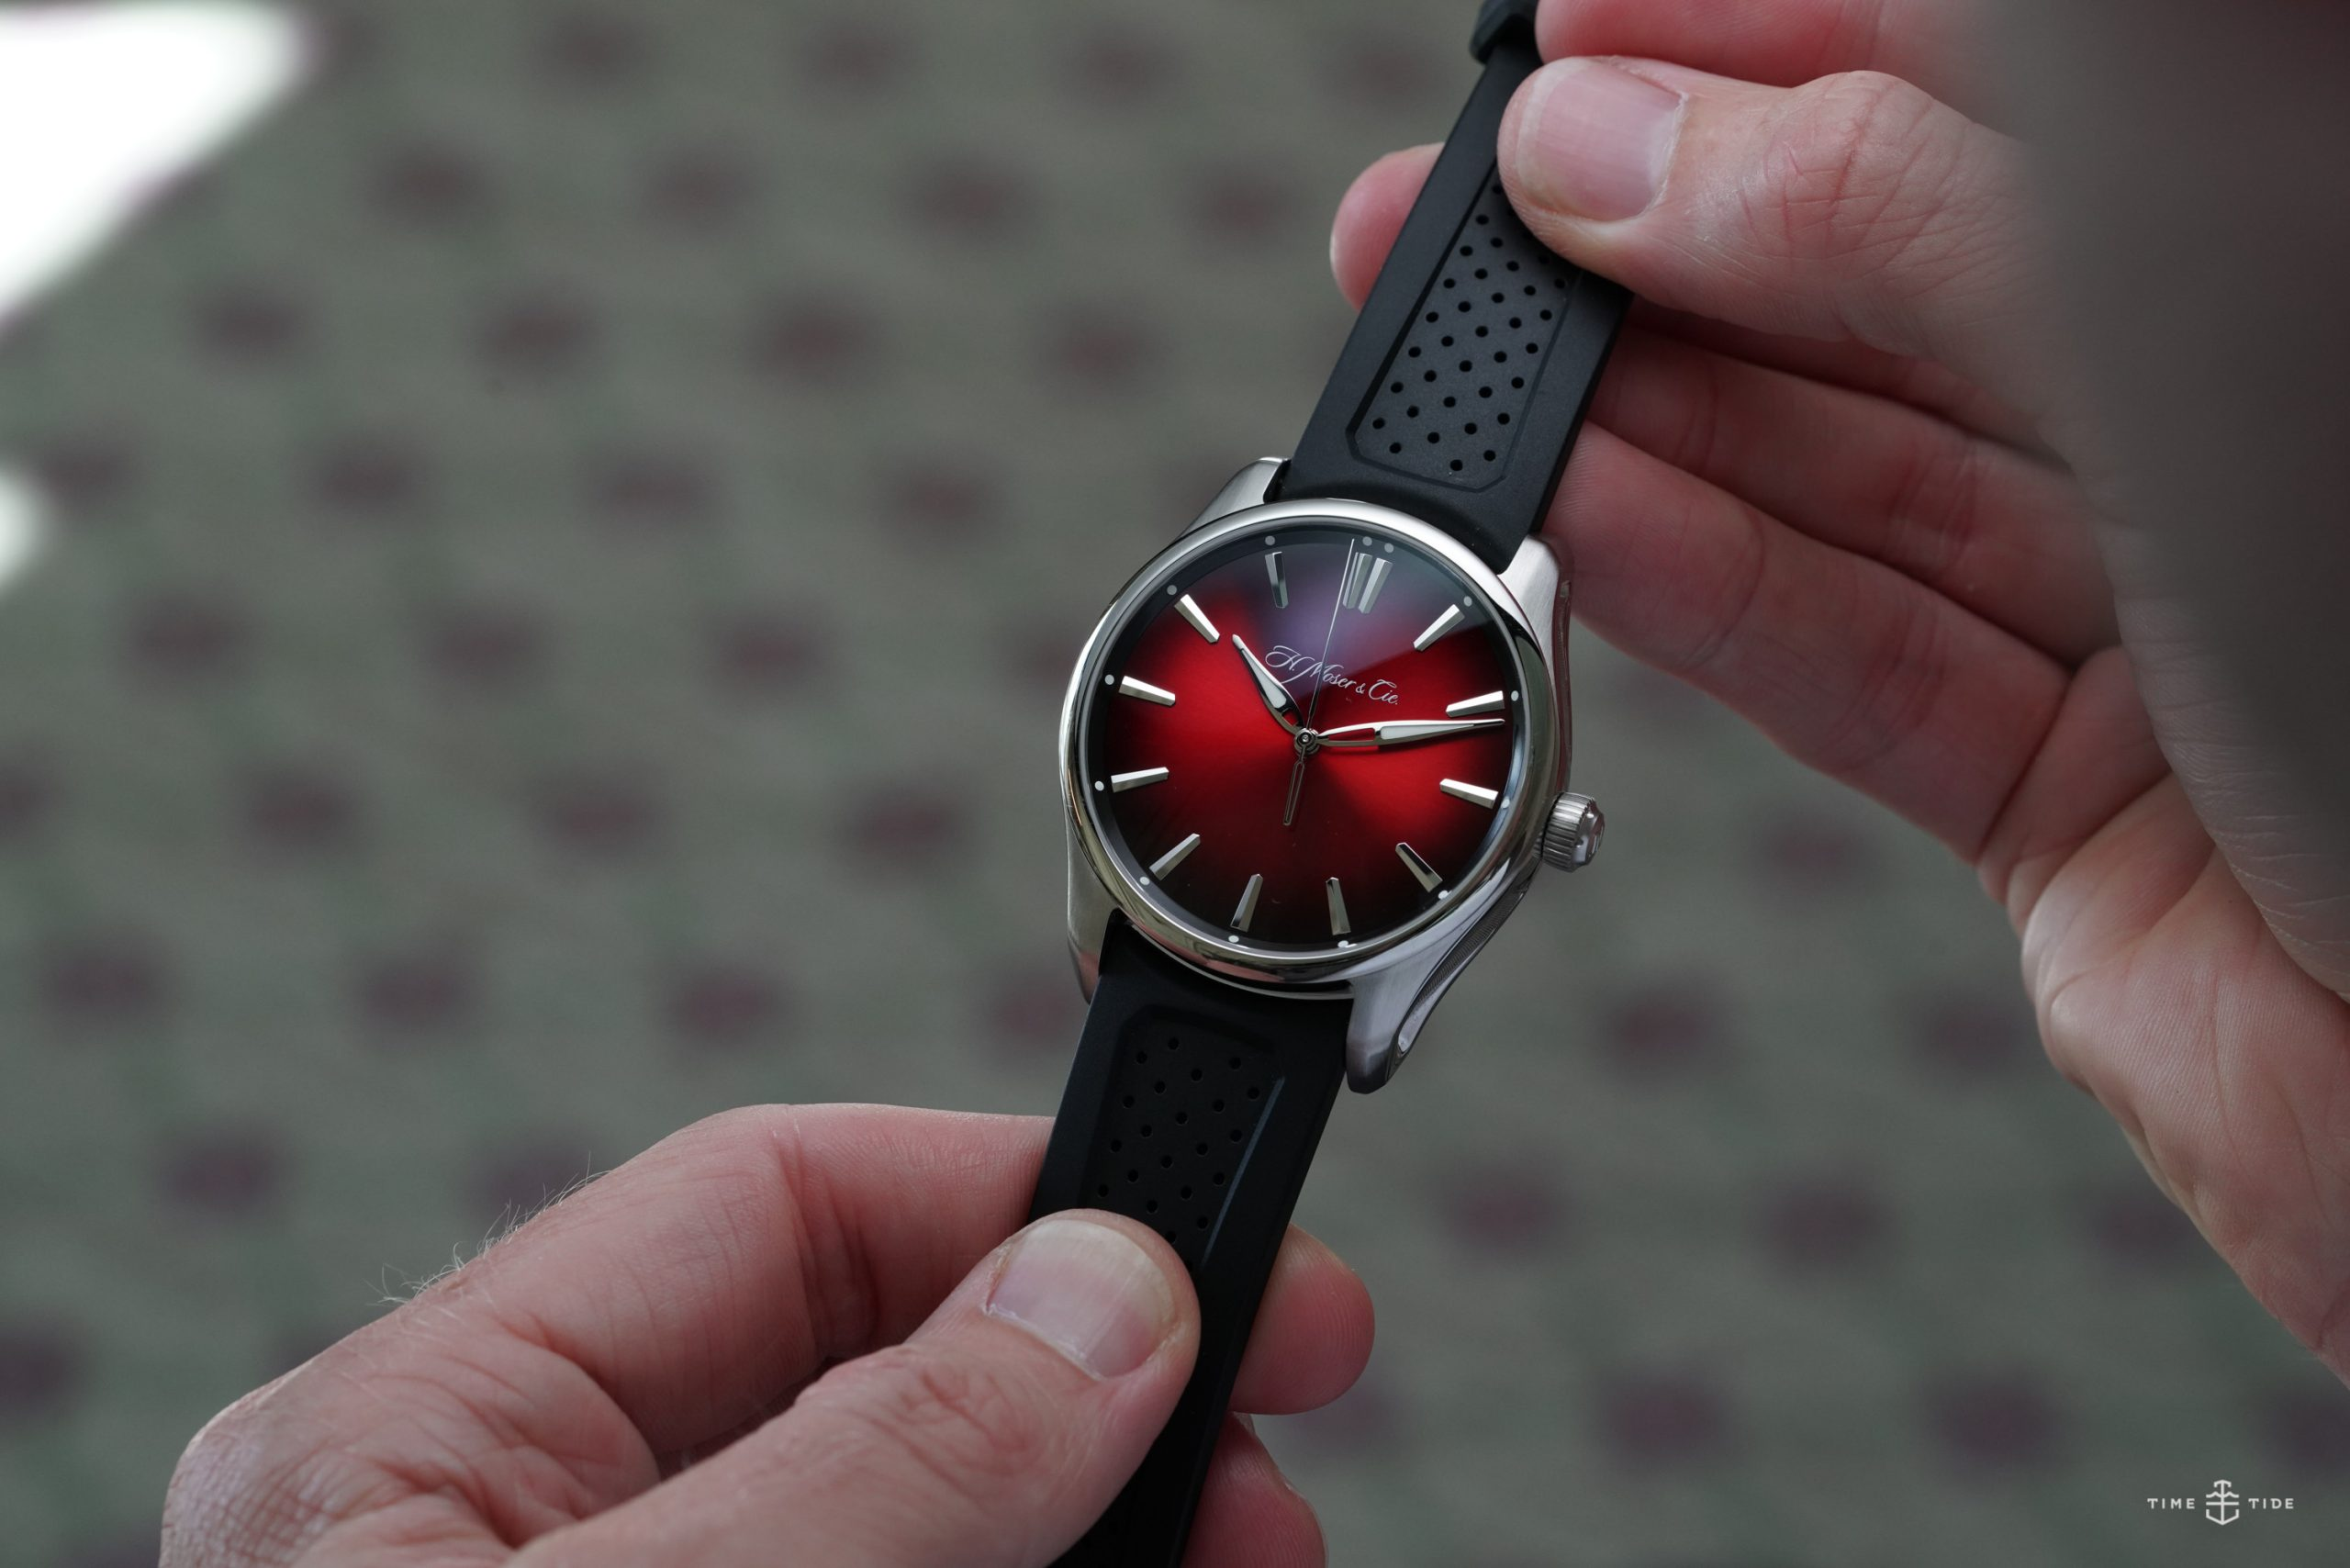 VIDEO: You'll get lost in the spellbinding dial of the H. Moser & Cie. Pioneer Centre Seconds Swiss Mad Red